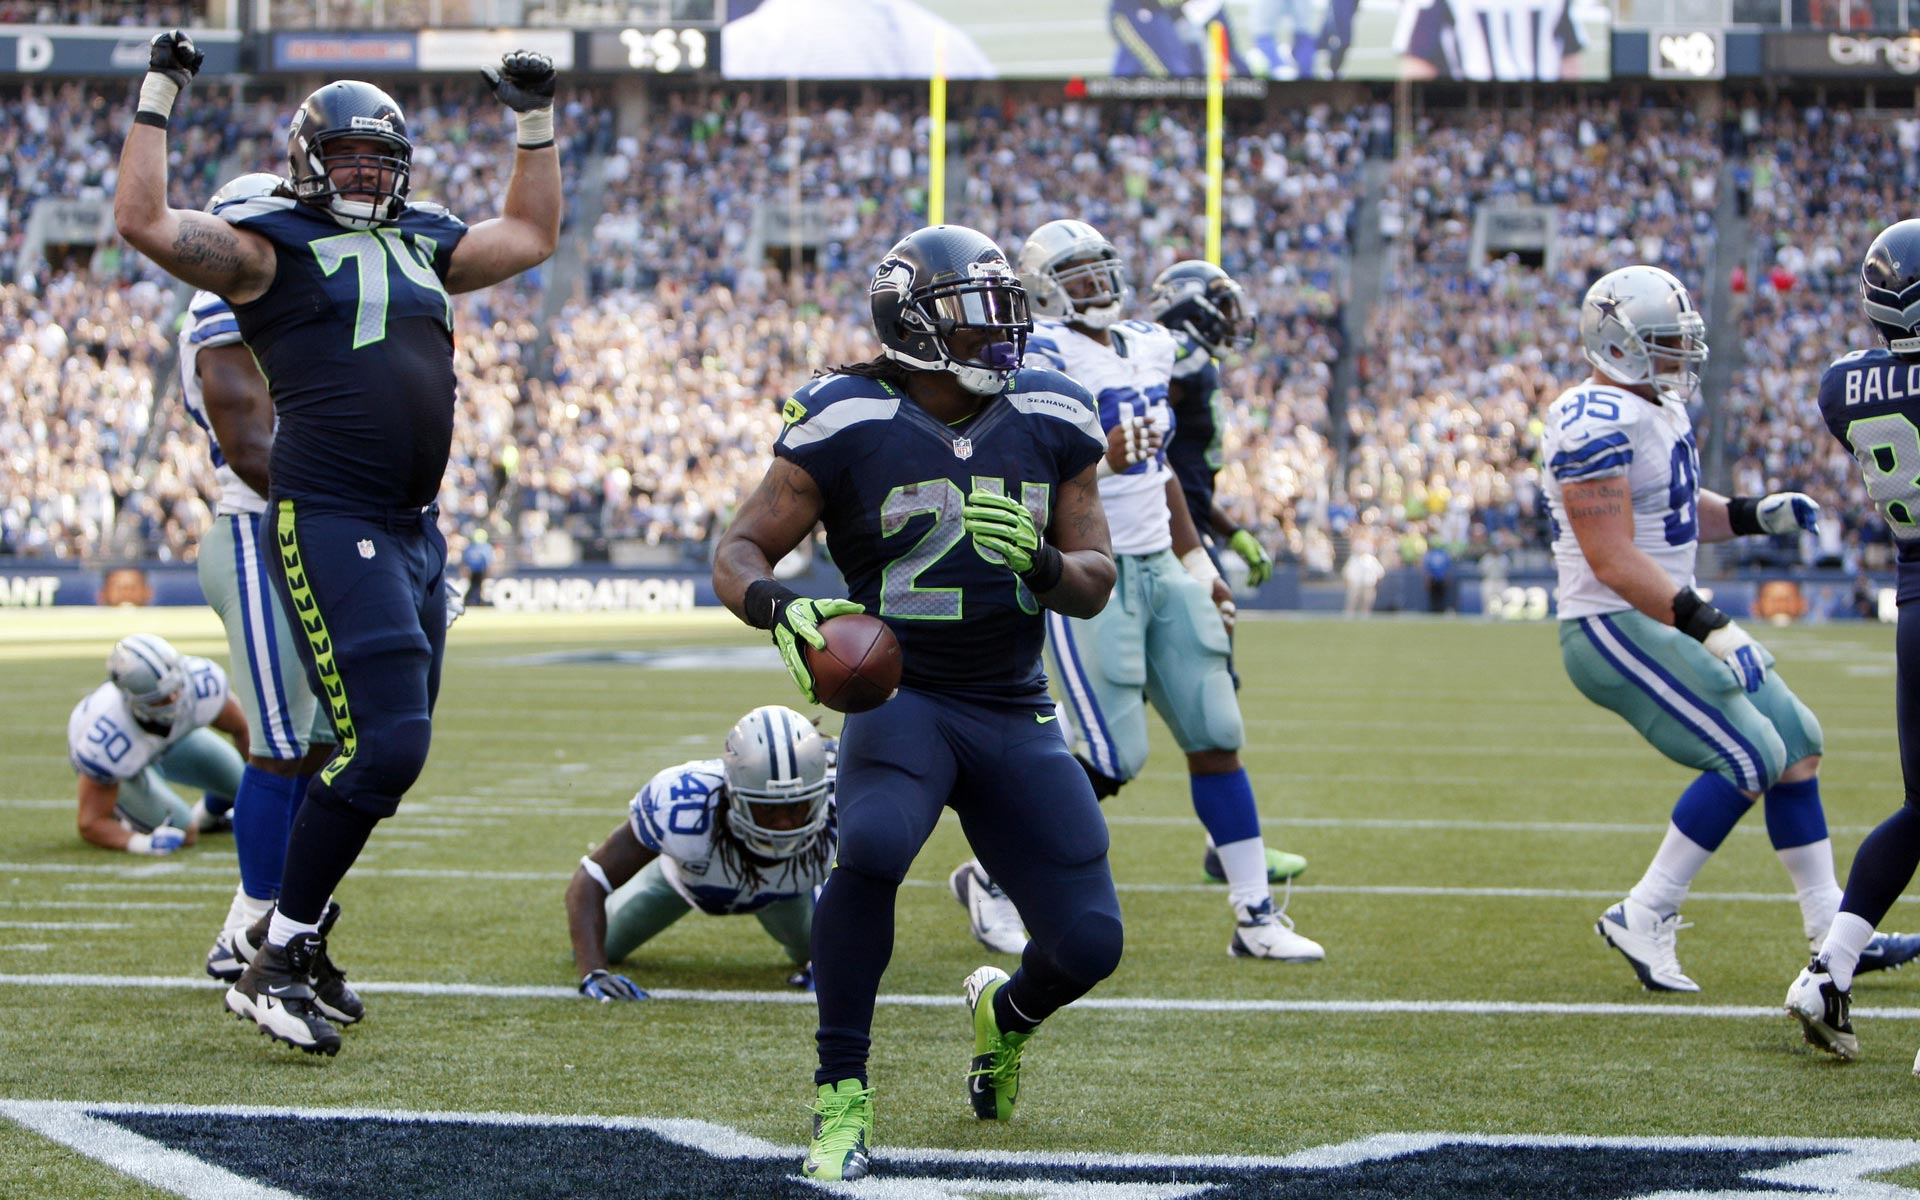 Fonds d'ecran de Seattle Seahawks 2